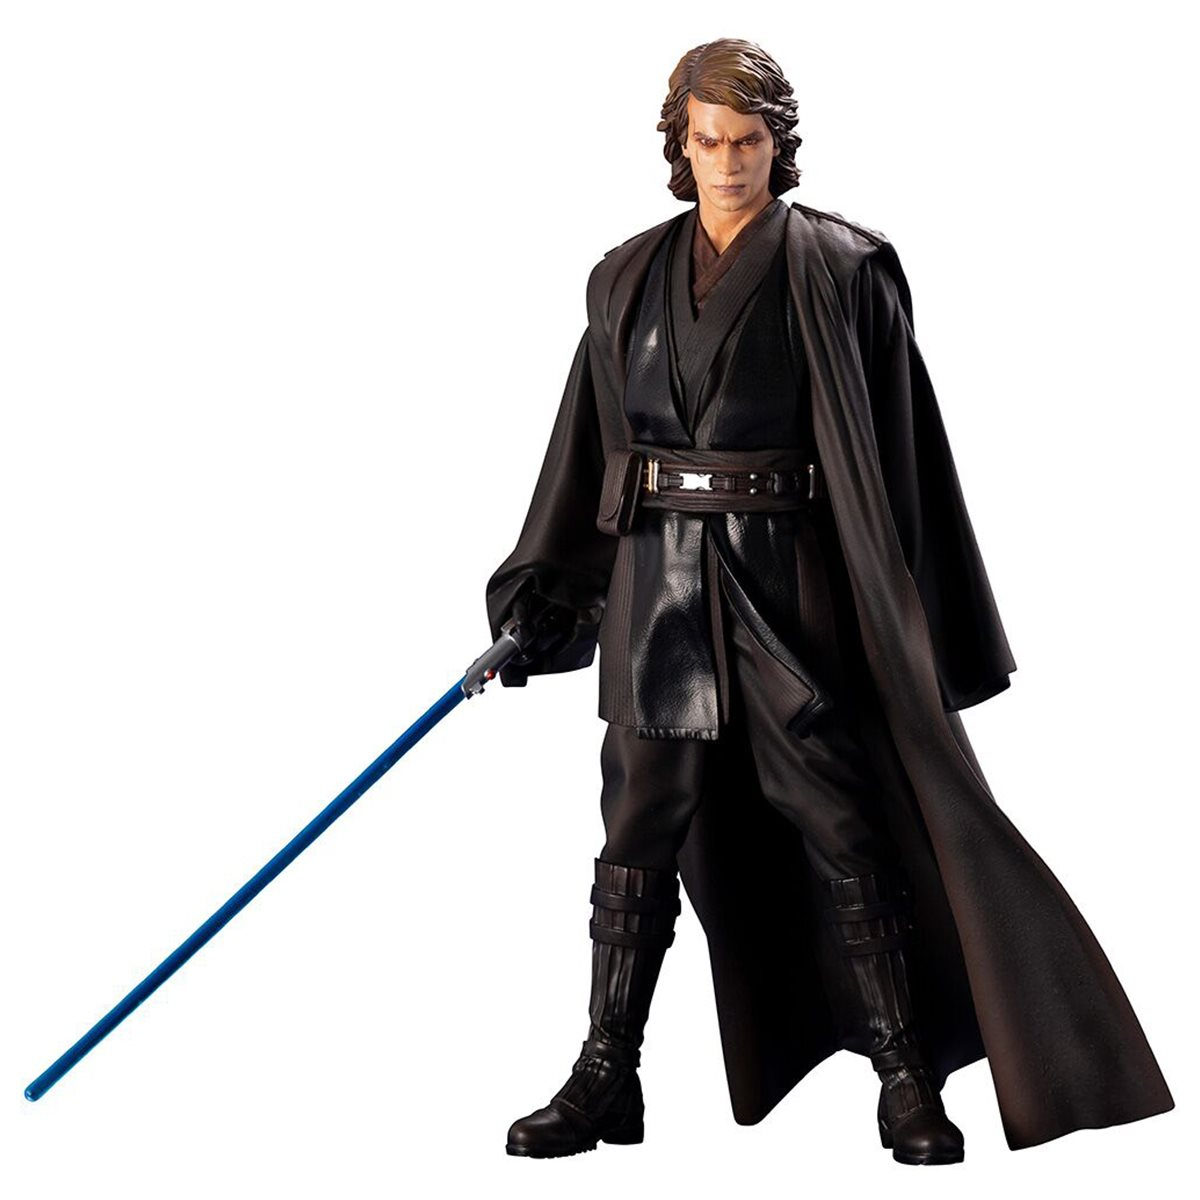 Star Wars Revenge Of The Sith Anakin Skywalker Artfx 1 10 Scale Statue Entertainment Earth